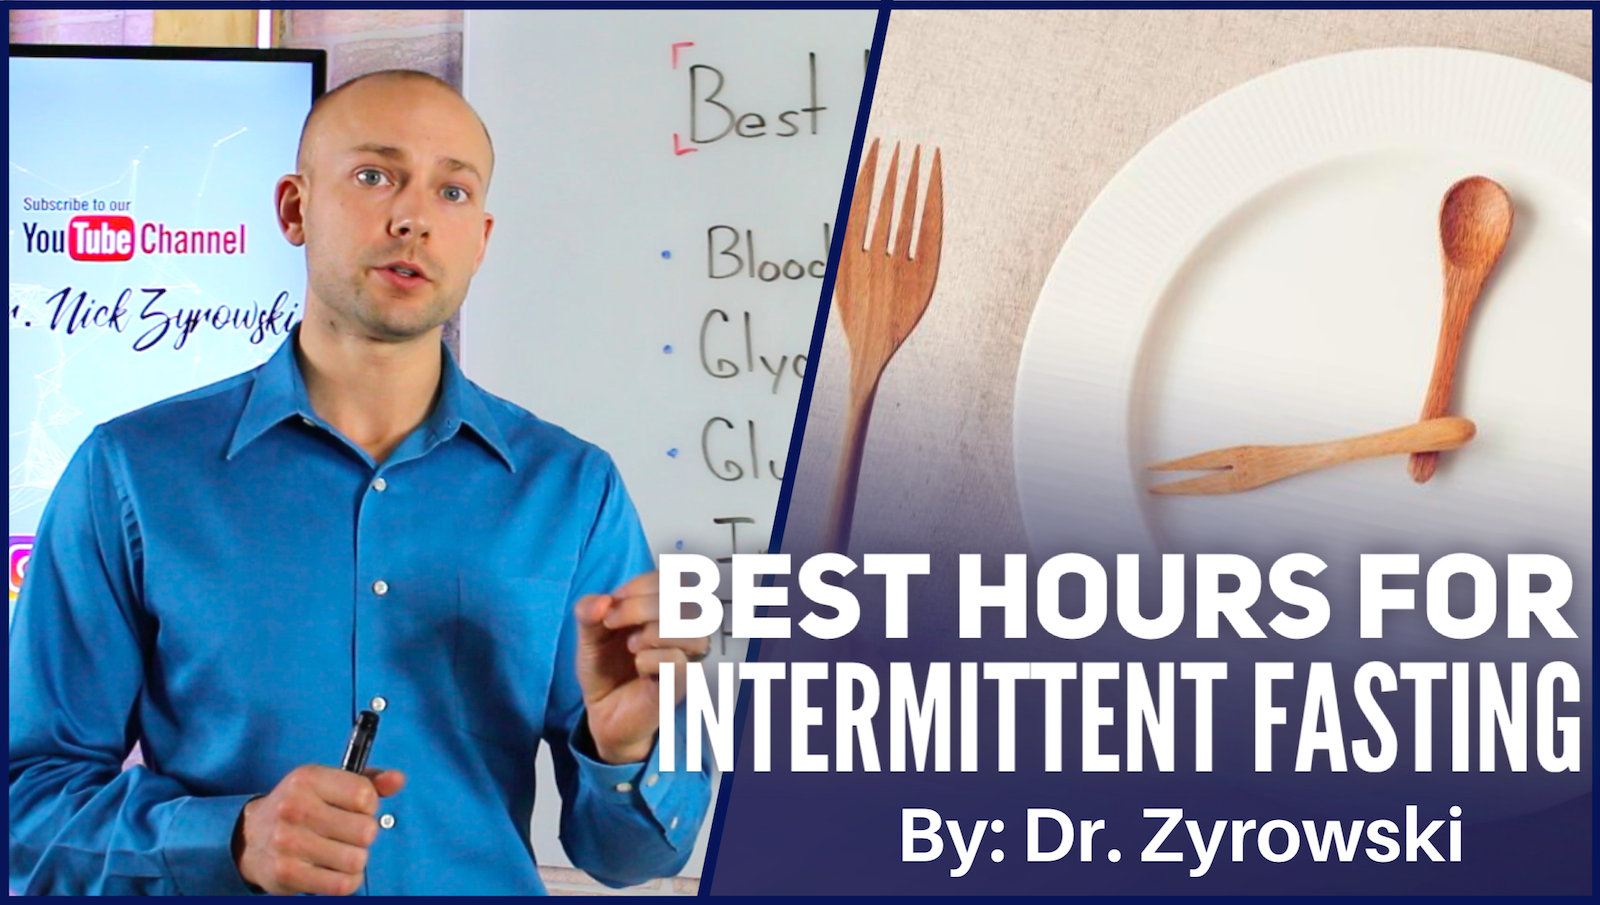 Best Hours For Intermittent Fasting